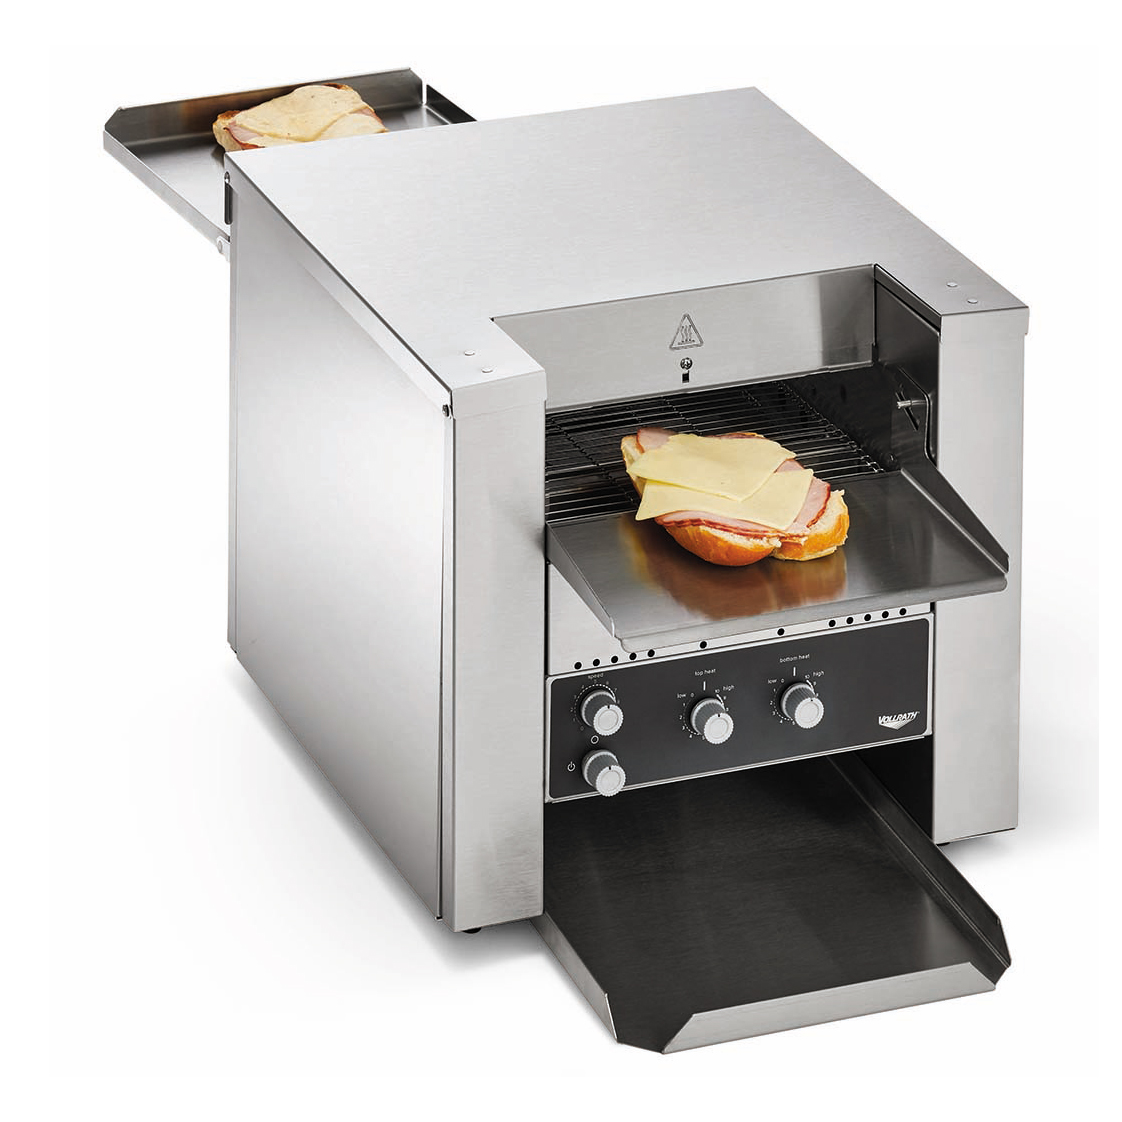 Vollrath CVT4-208550 toaster, conveyor type